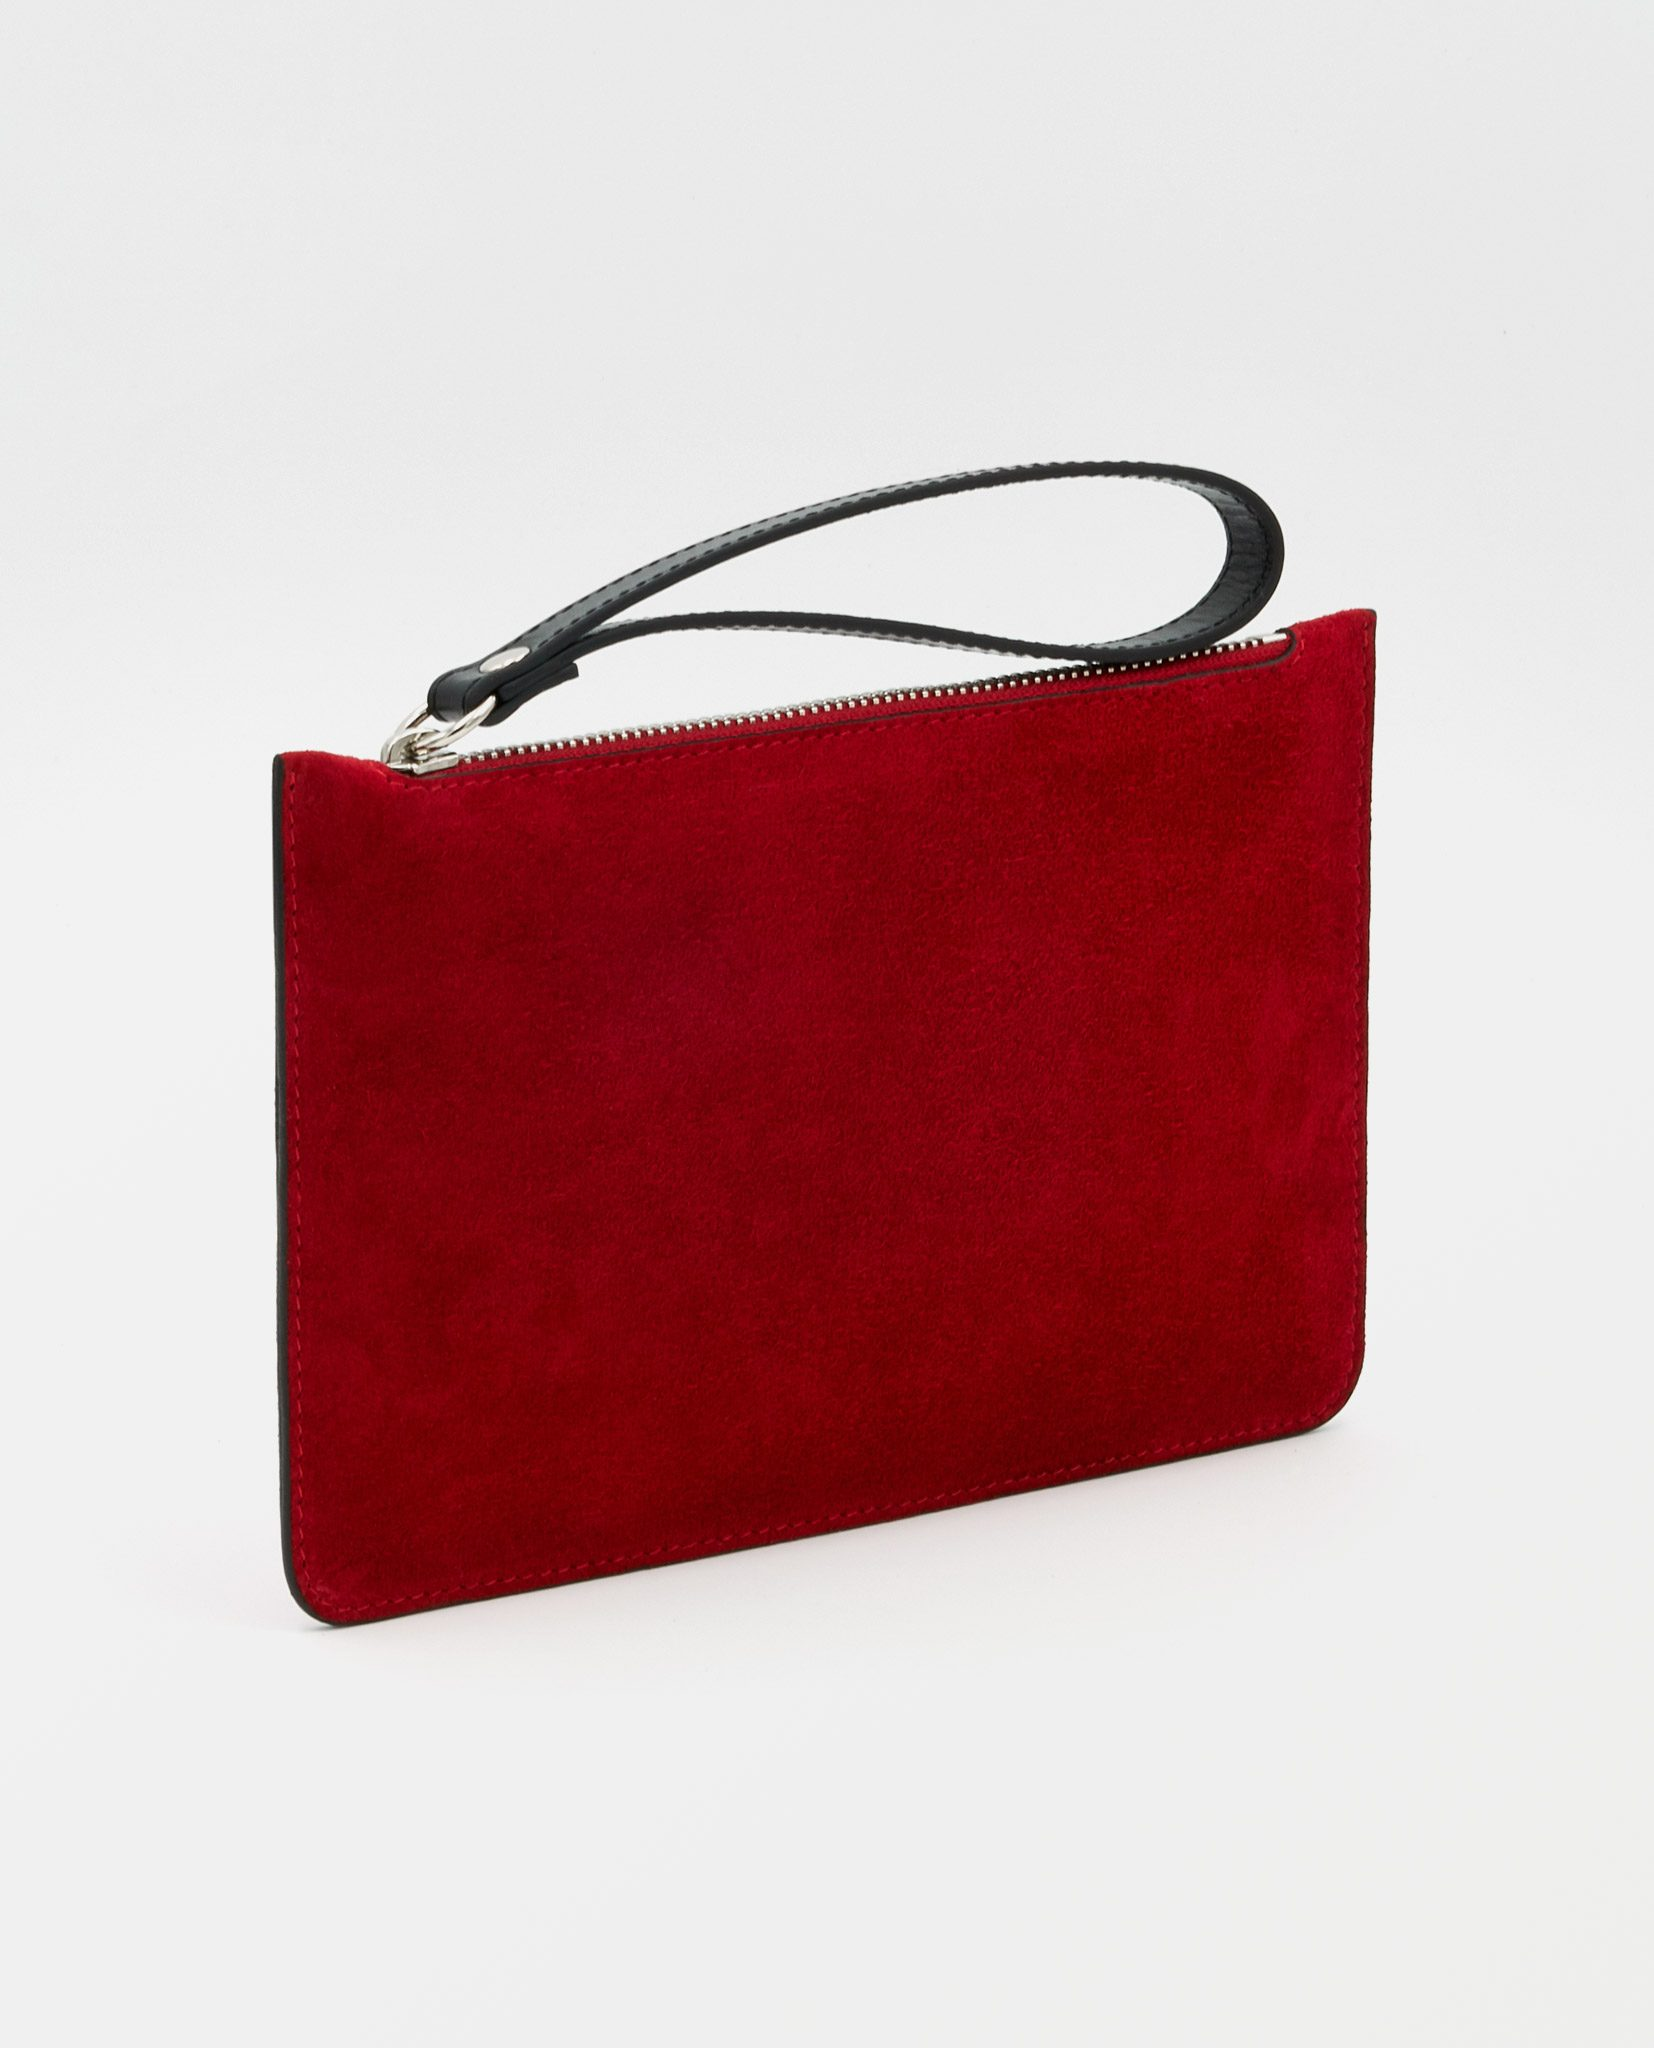 Soofre Small Suede Leather Pouch Red-Black